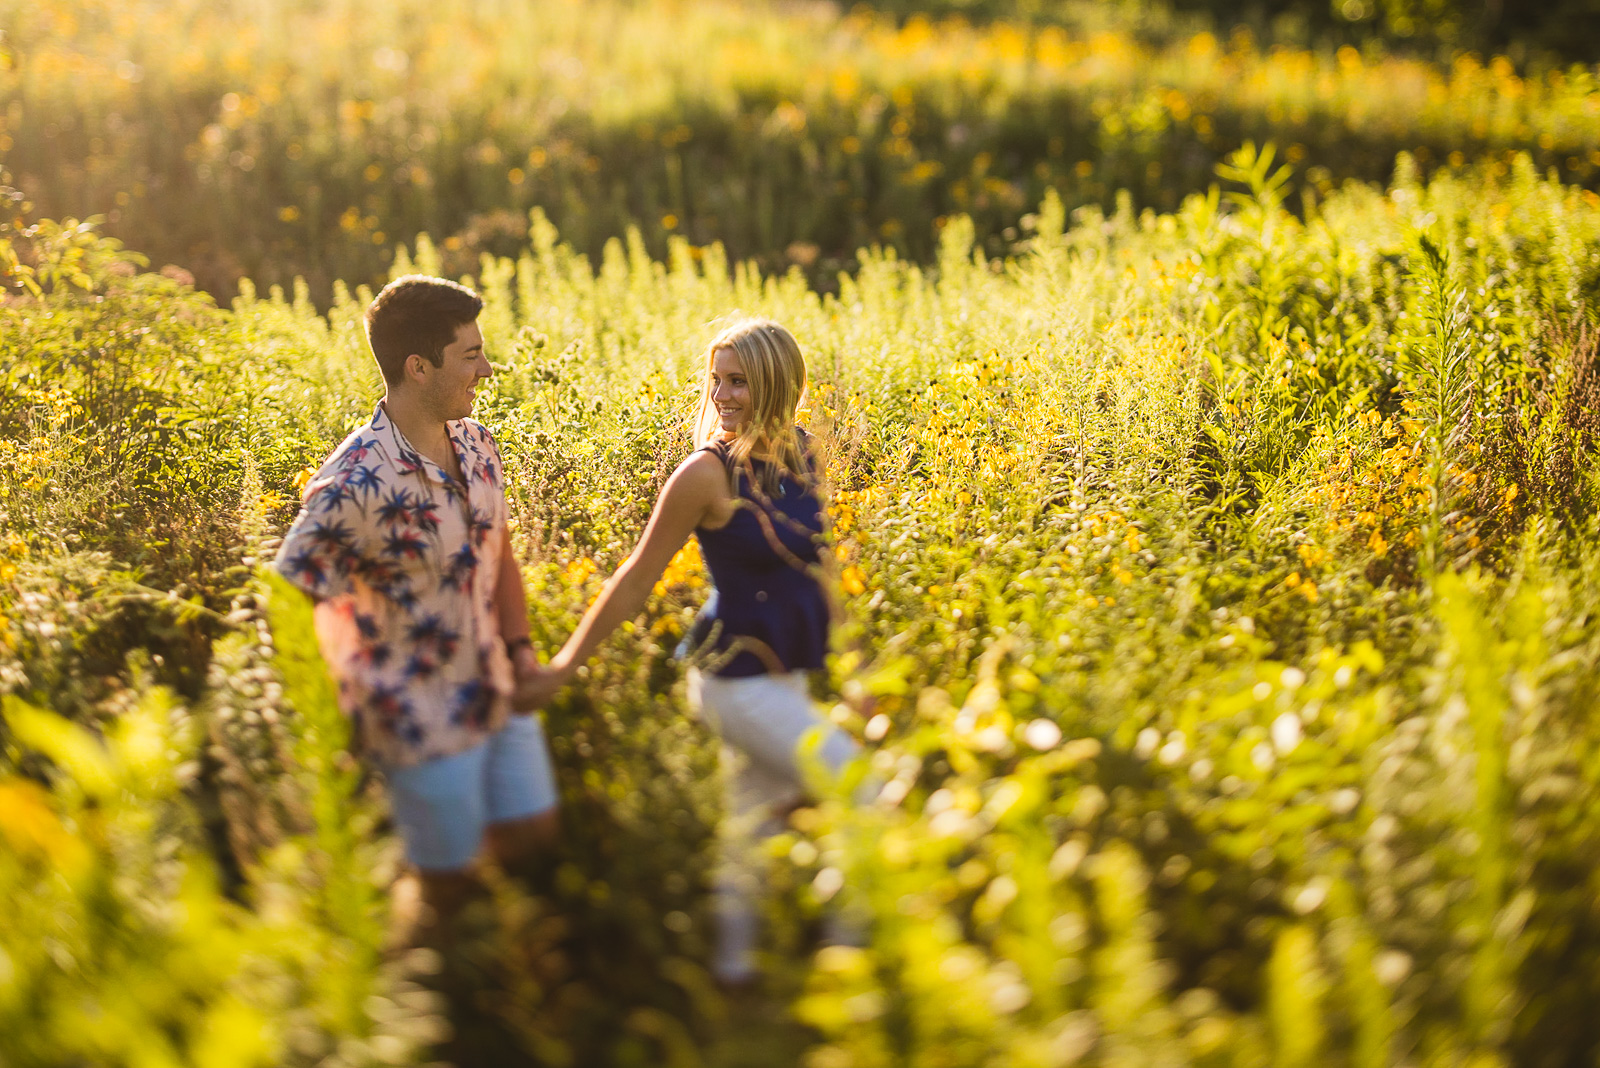 12 best chicago wedding and engagement photographers peter gubernat - Chicago Sunrise Engagement Photos // Mikayla + Dom